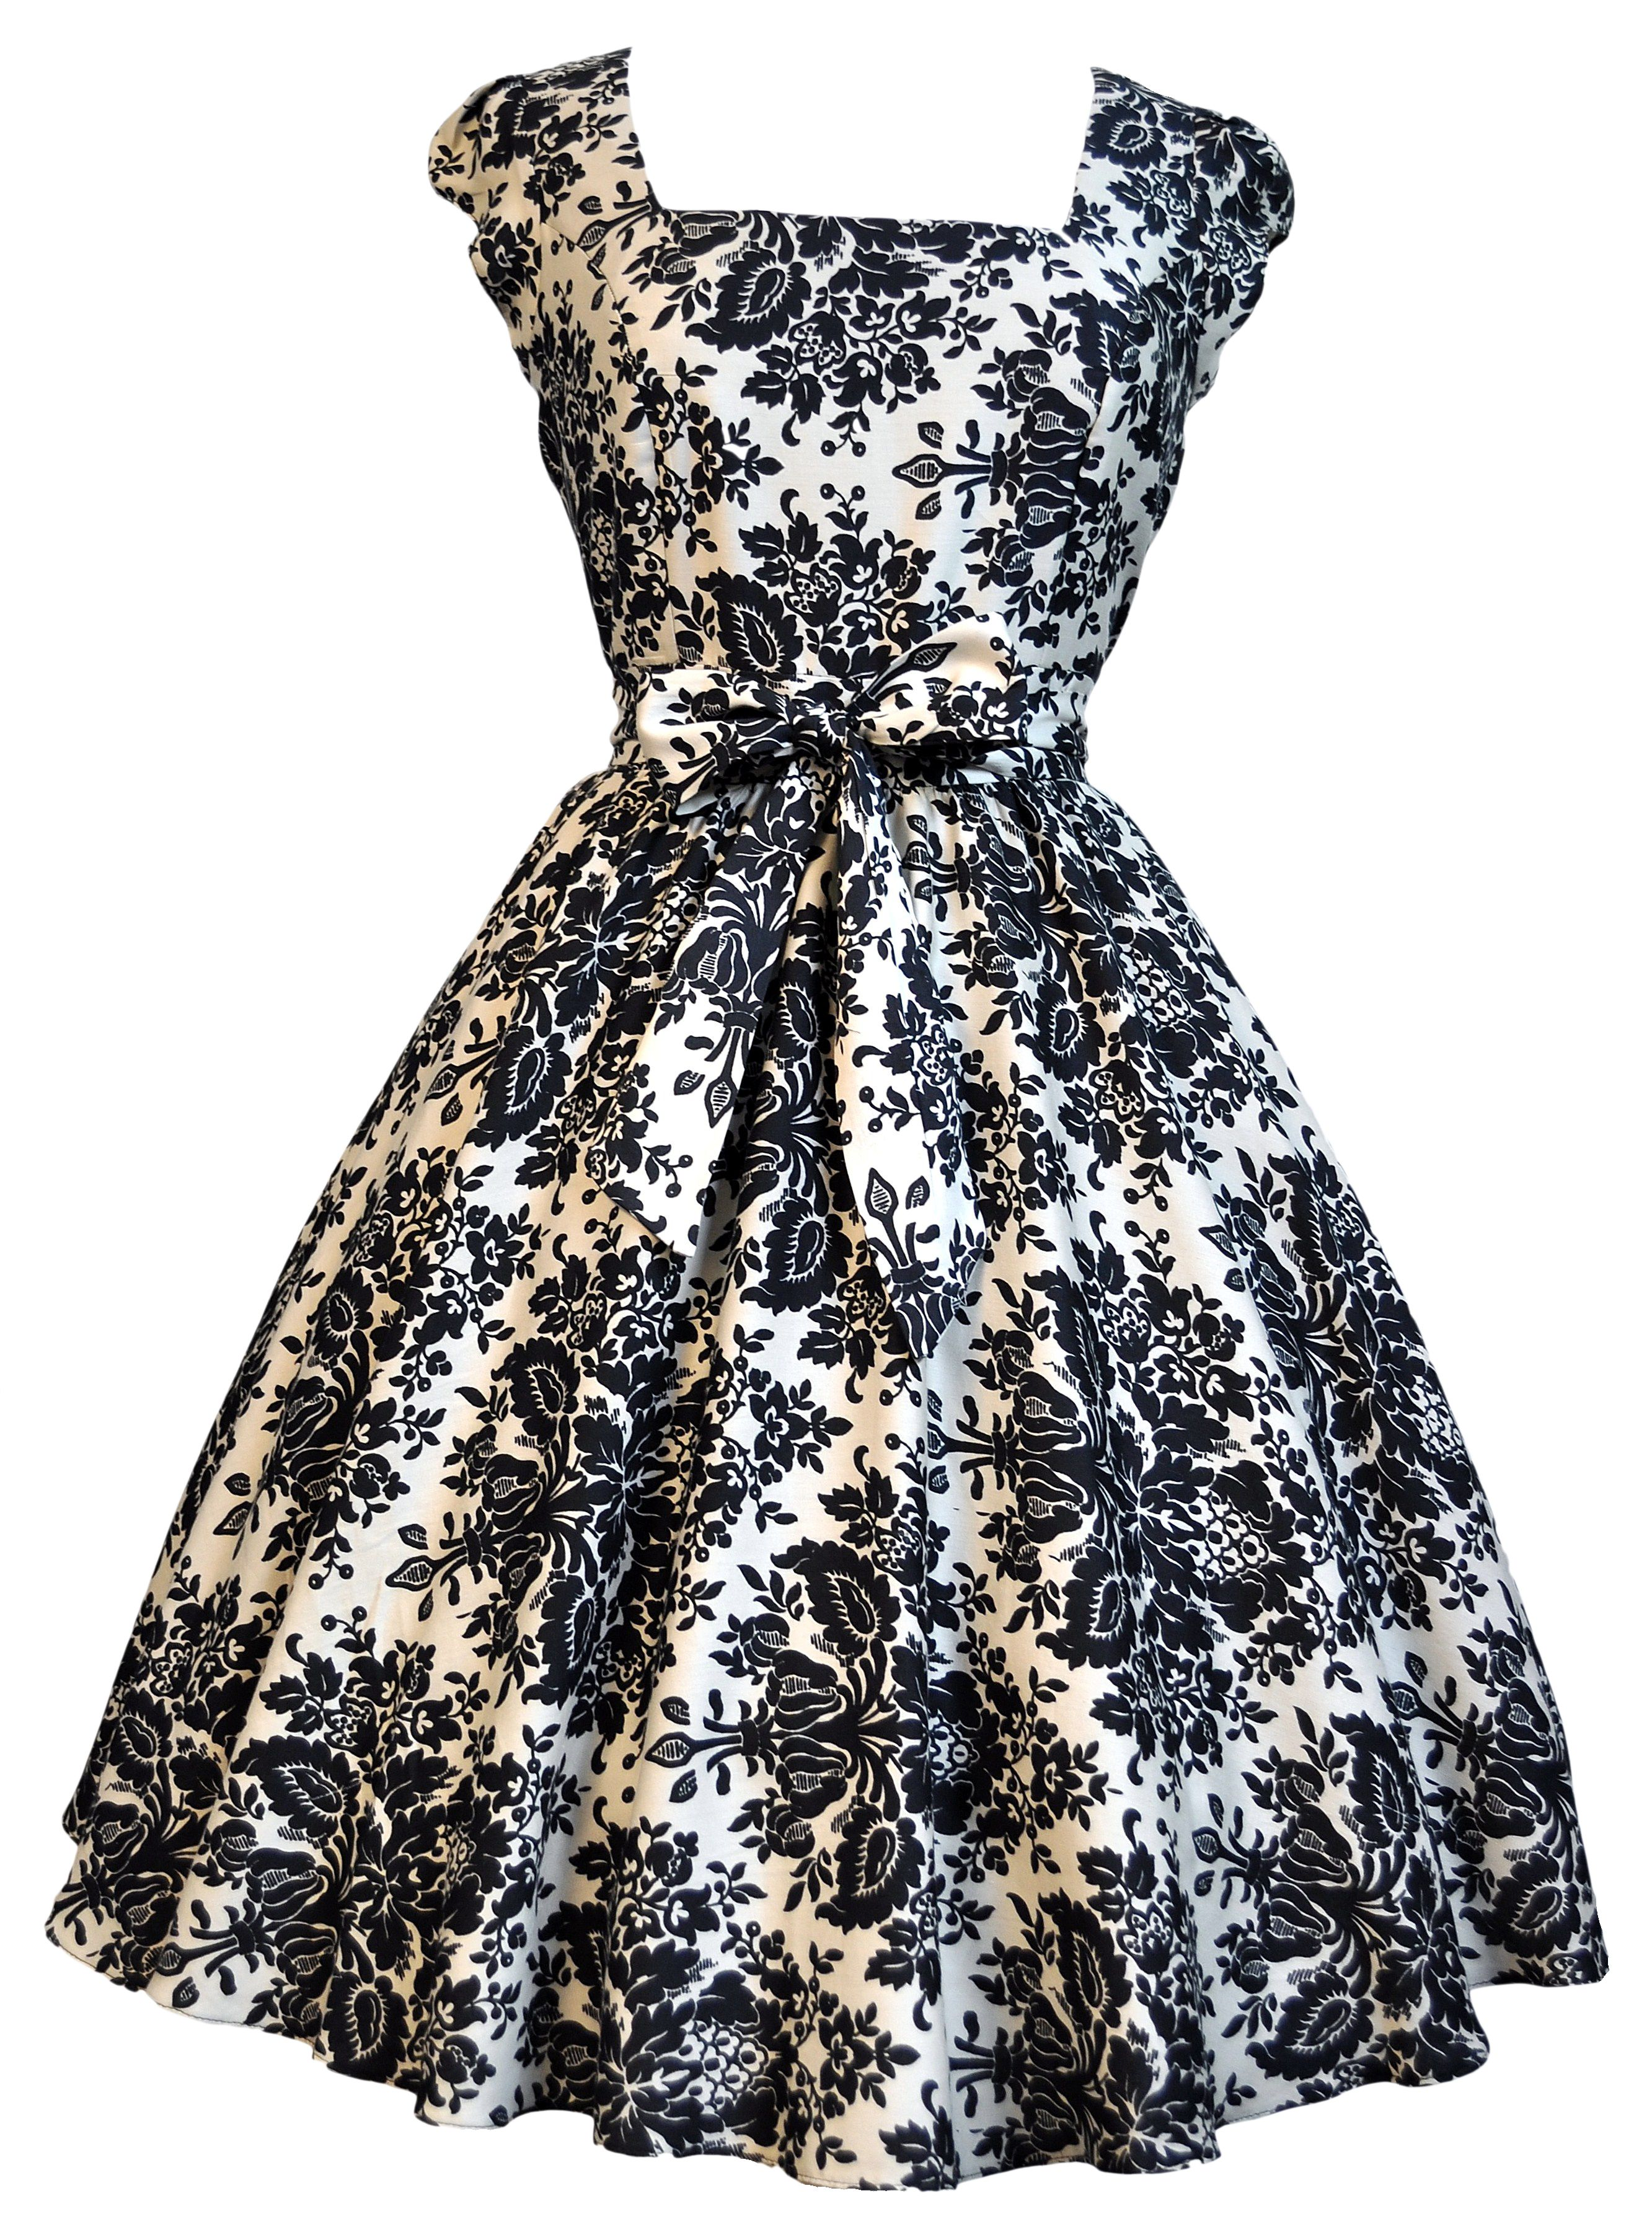 Damask delight swing dress s style flared skirt and bodice